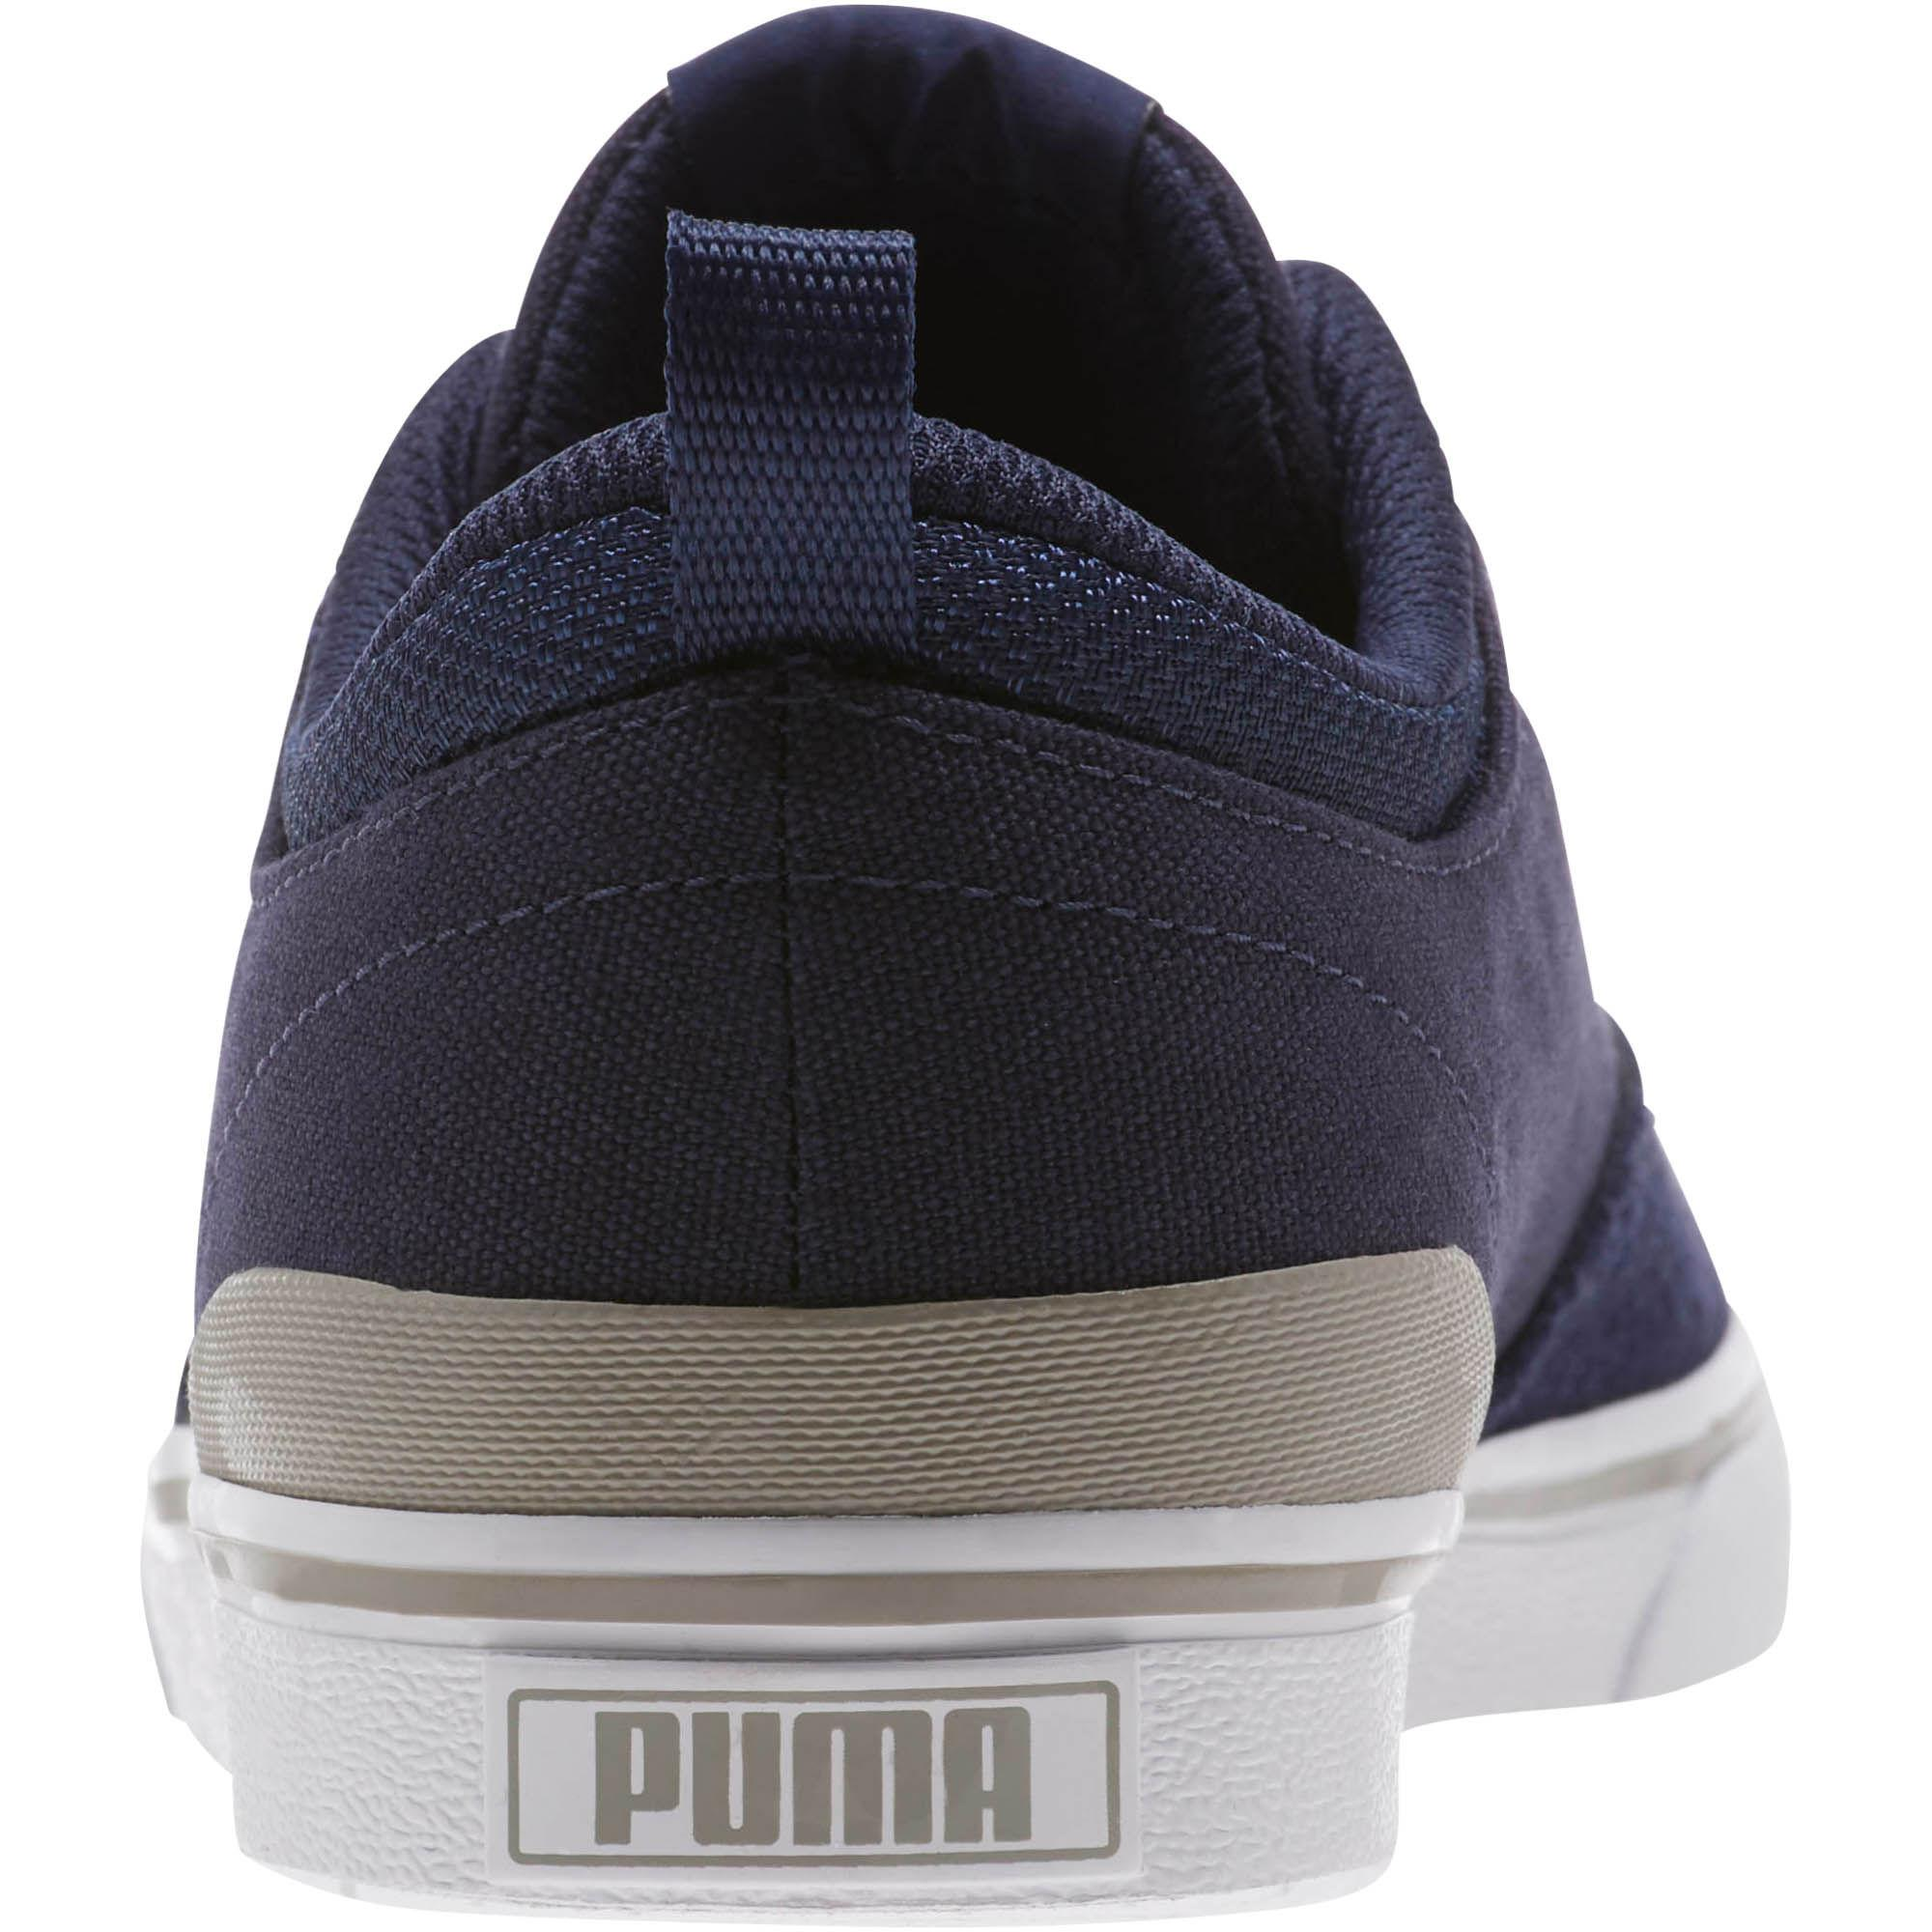 3197651de34e PUMA - Blue Bridger Cat Men s Sneakers for Men - Lyst. View fullscreen